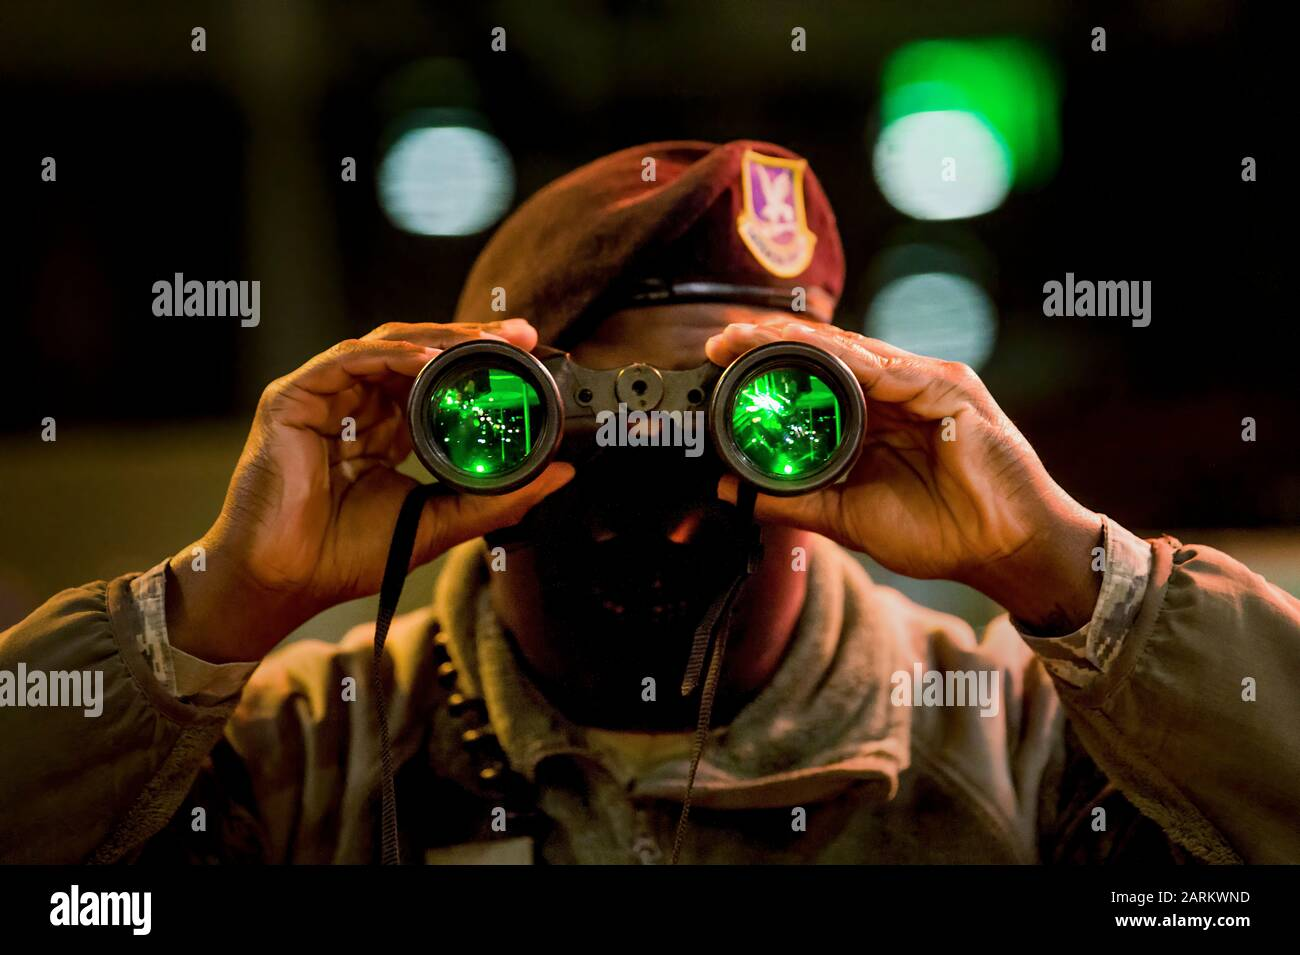 U.S. AIR FORCE ACADEMY, Colo. – Airman First Class Richard Scott, a Security Forces Installation Entry Controller, uses night vision binoculars during a night shift on Jan. 7, 2020 at the U.S. Air Force Academy's North Gate. (U.S. Air Force photo/Trevor Cokley) Stock Photo